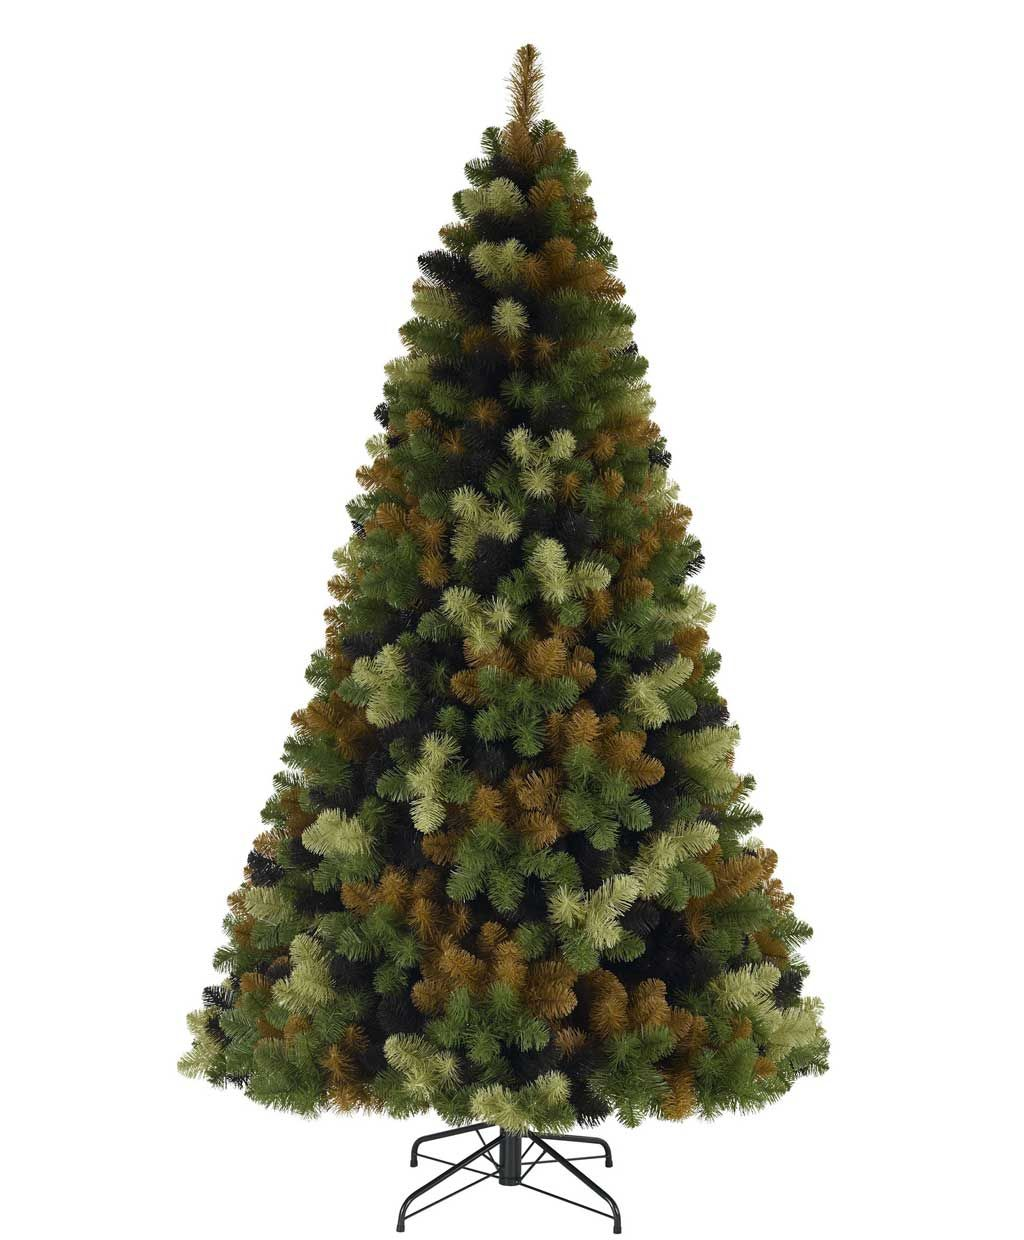 Image result for camouflage christmas tree